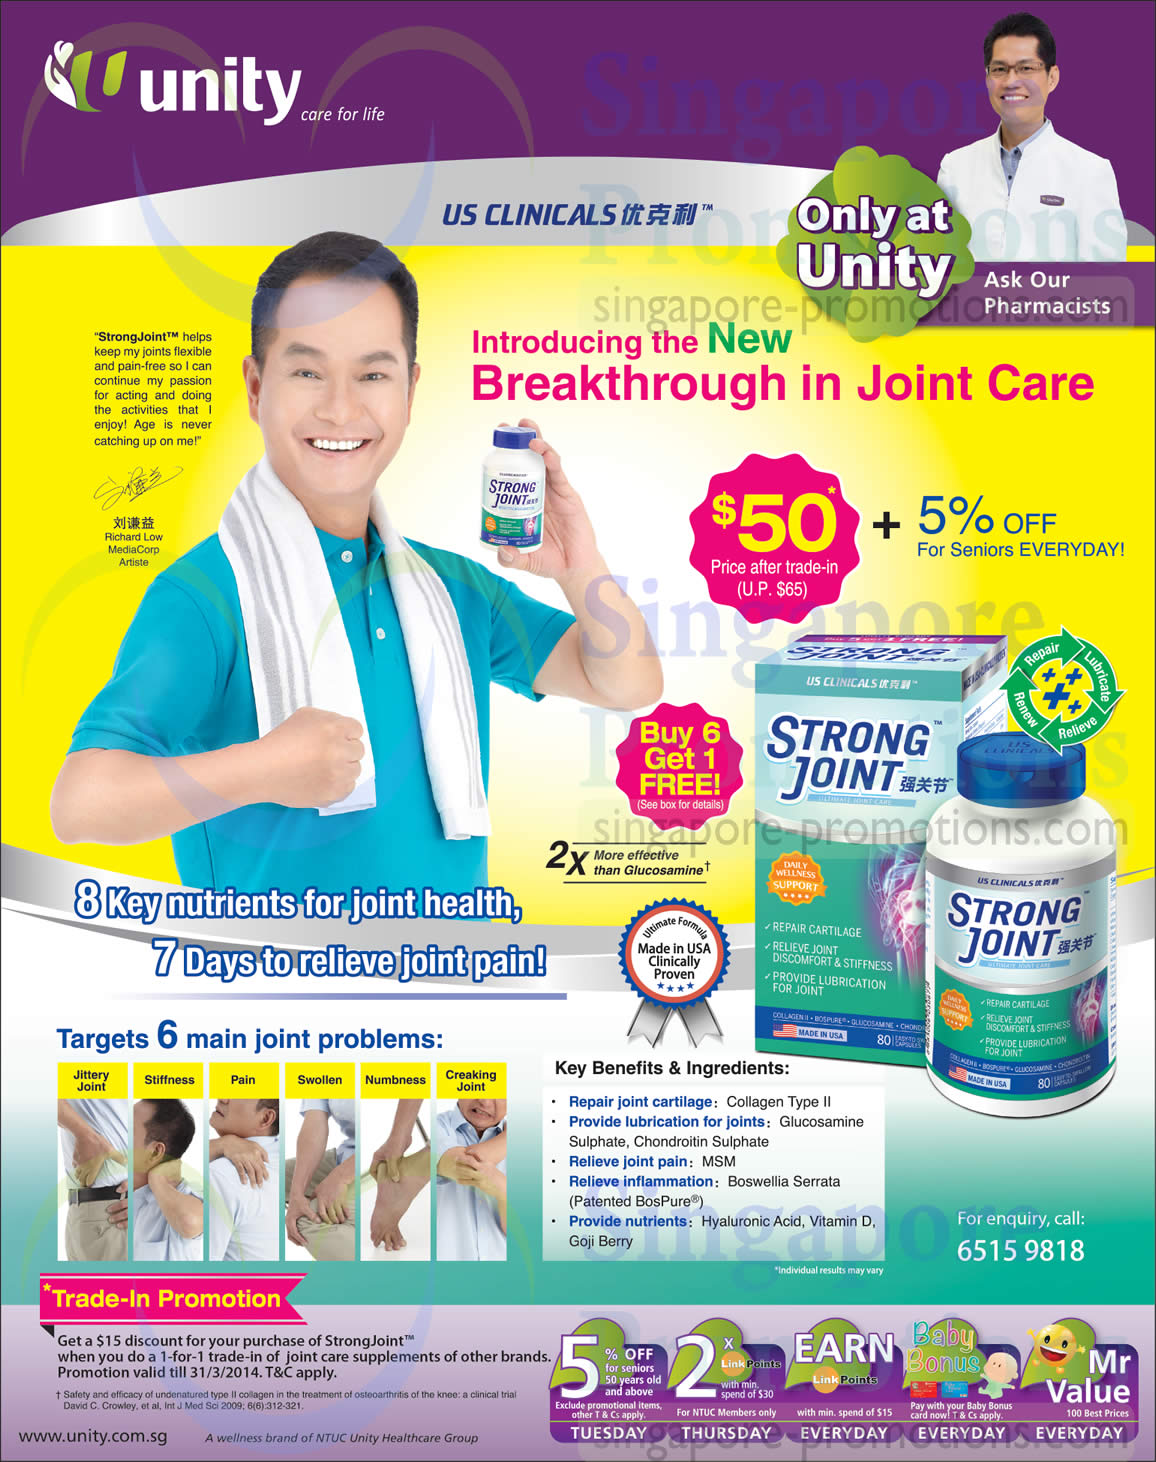 14 Mar US Clinicals Strong Joint » NTUC Unity Health Offers